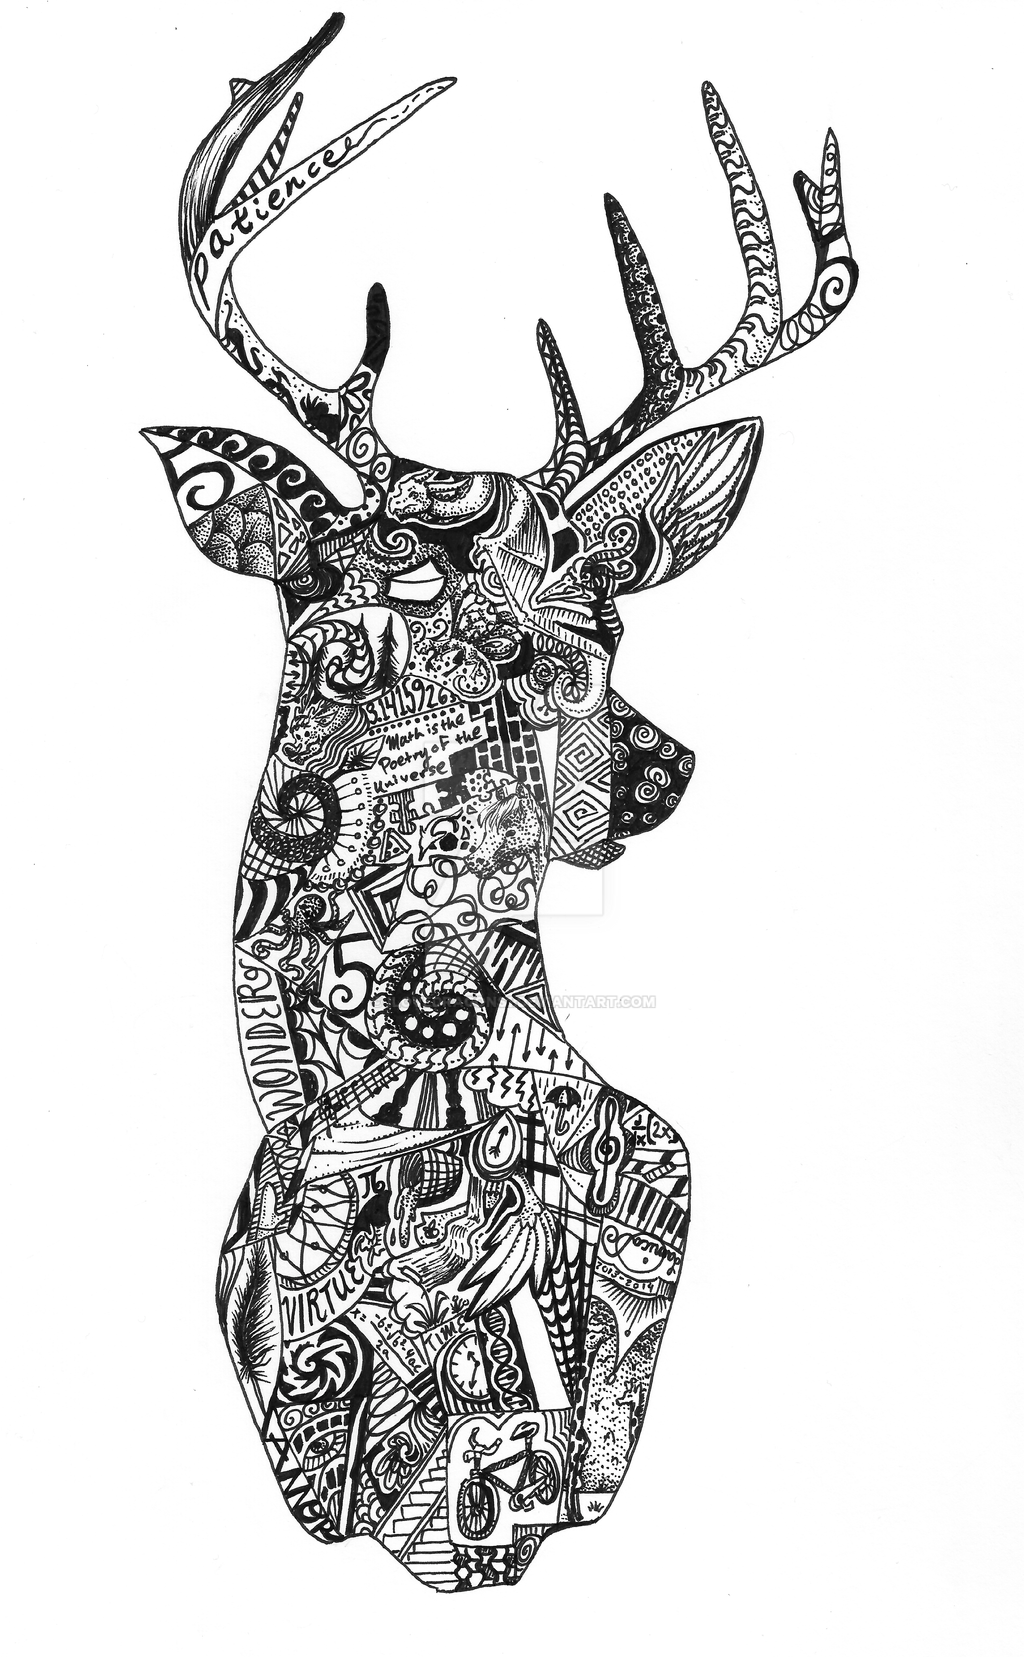 Abstract Deer Silhouette By Ilovedragons1 On DeviantArt